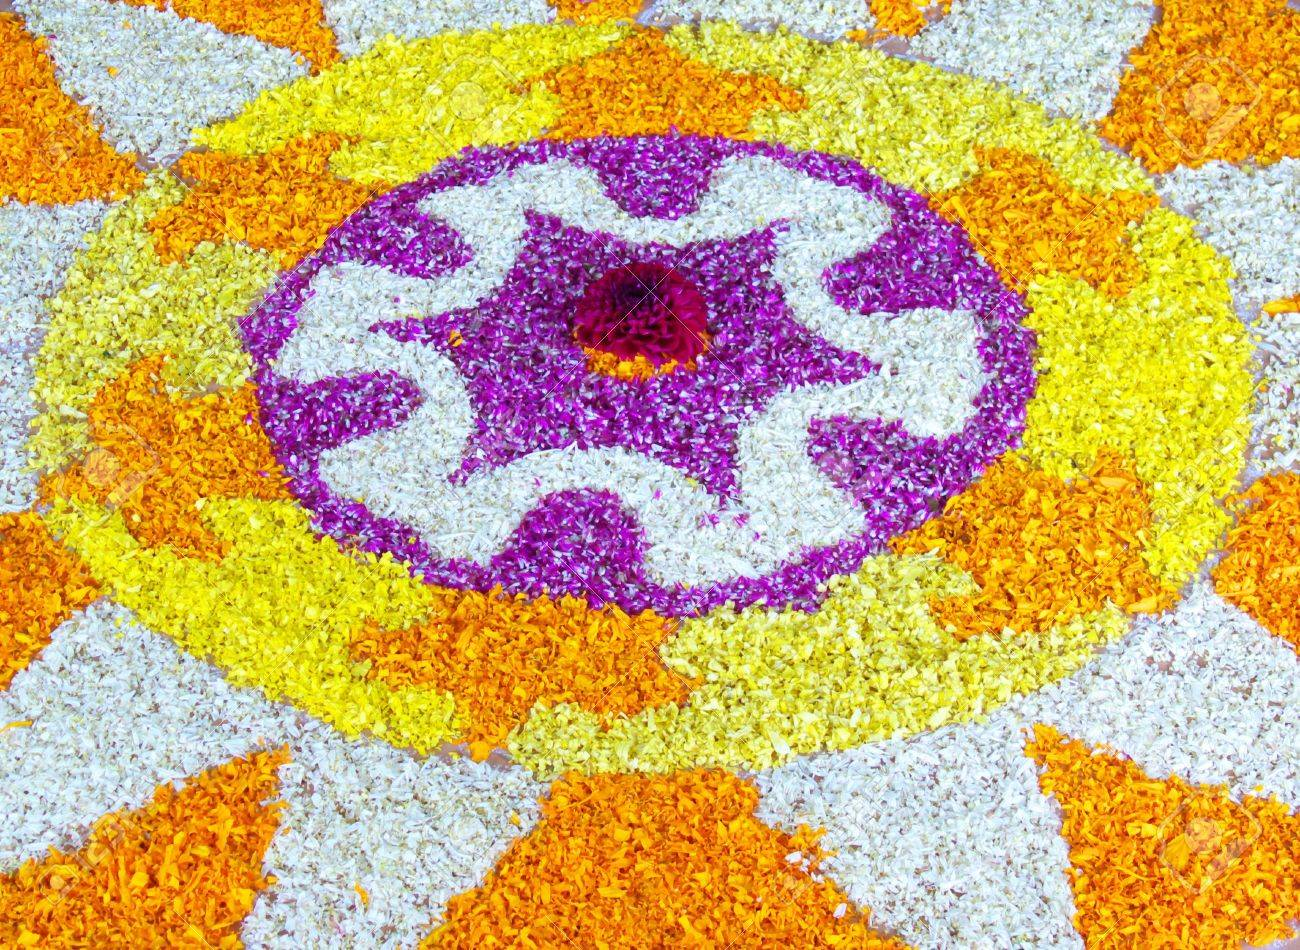 Indian Festival Decoration Flower Decoration At Indian Home In Kerala For Onam Festival